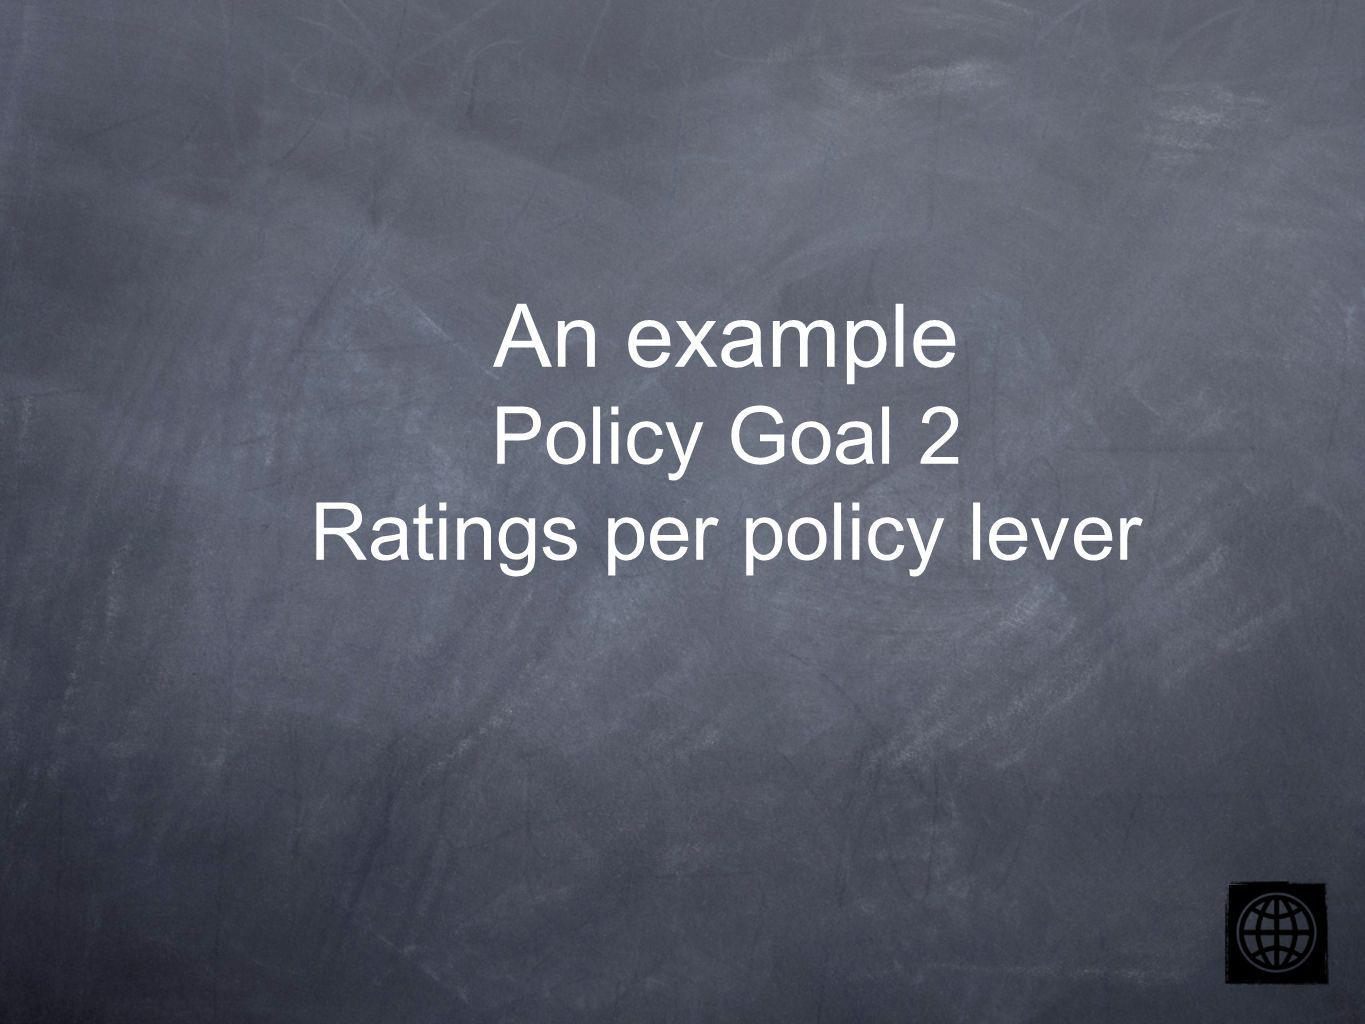 An example Policy Goal 2 Ratings per policy lever